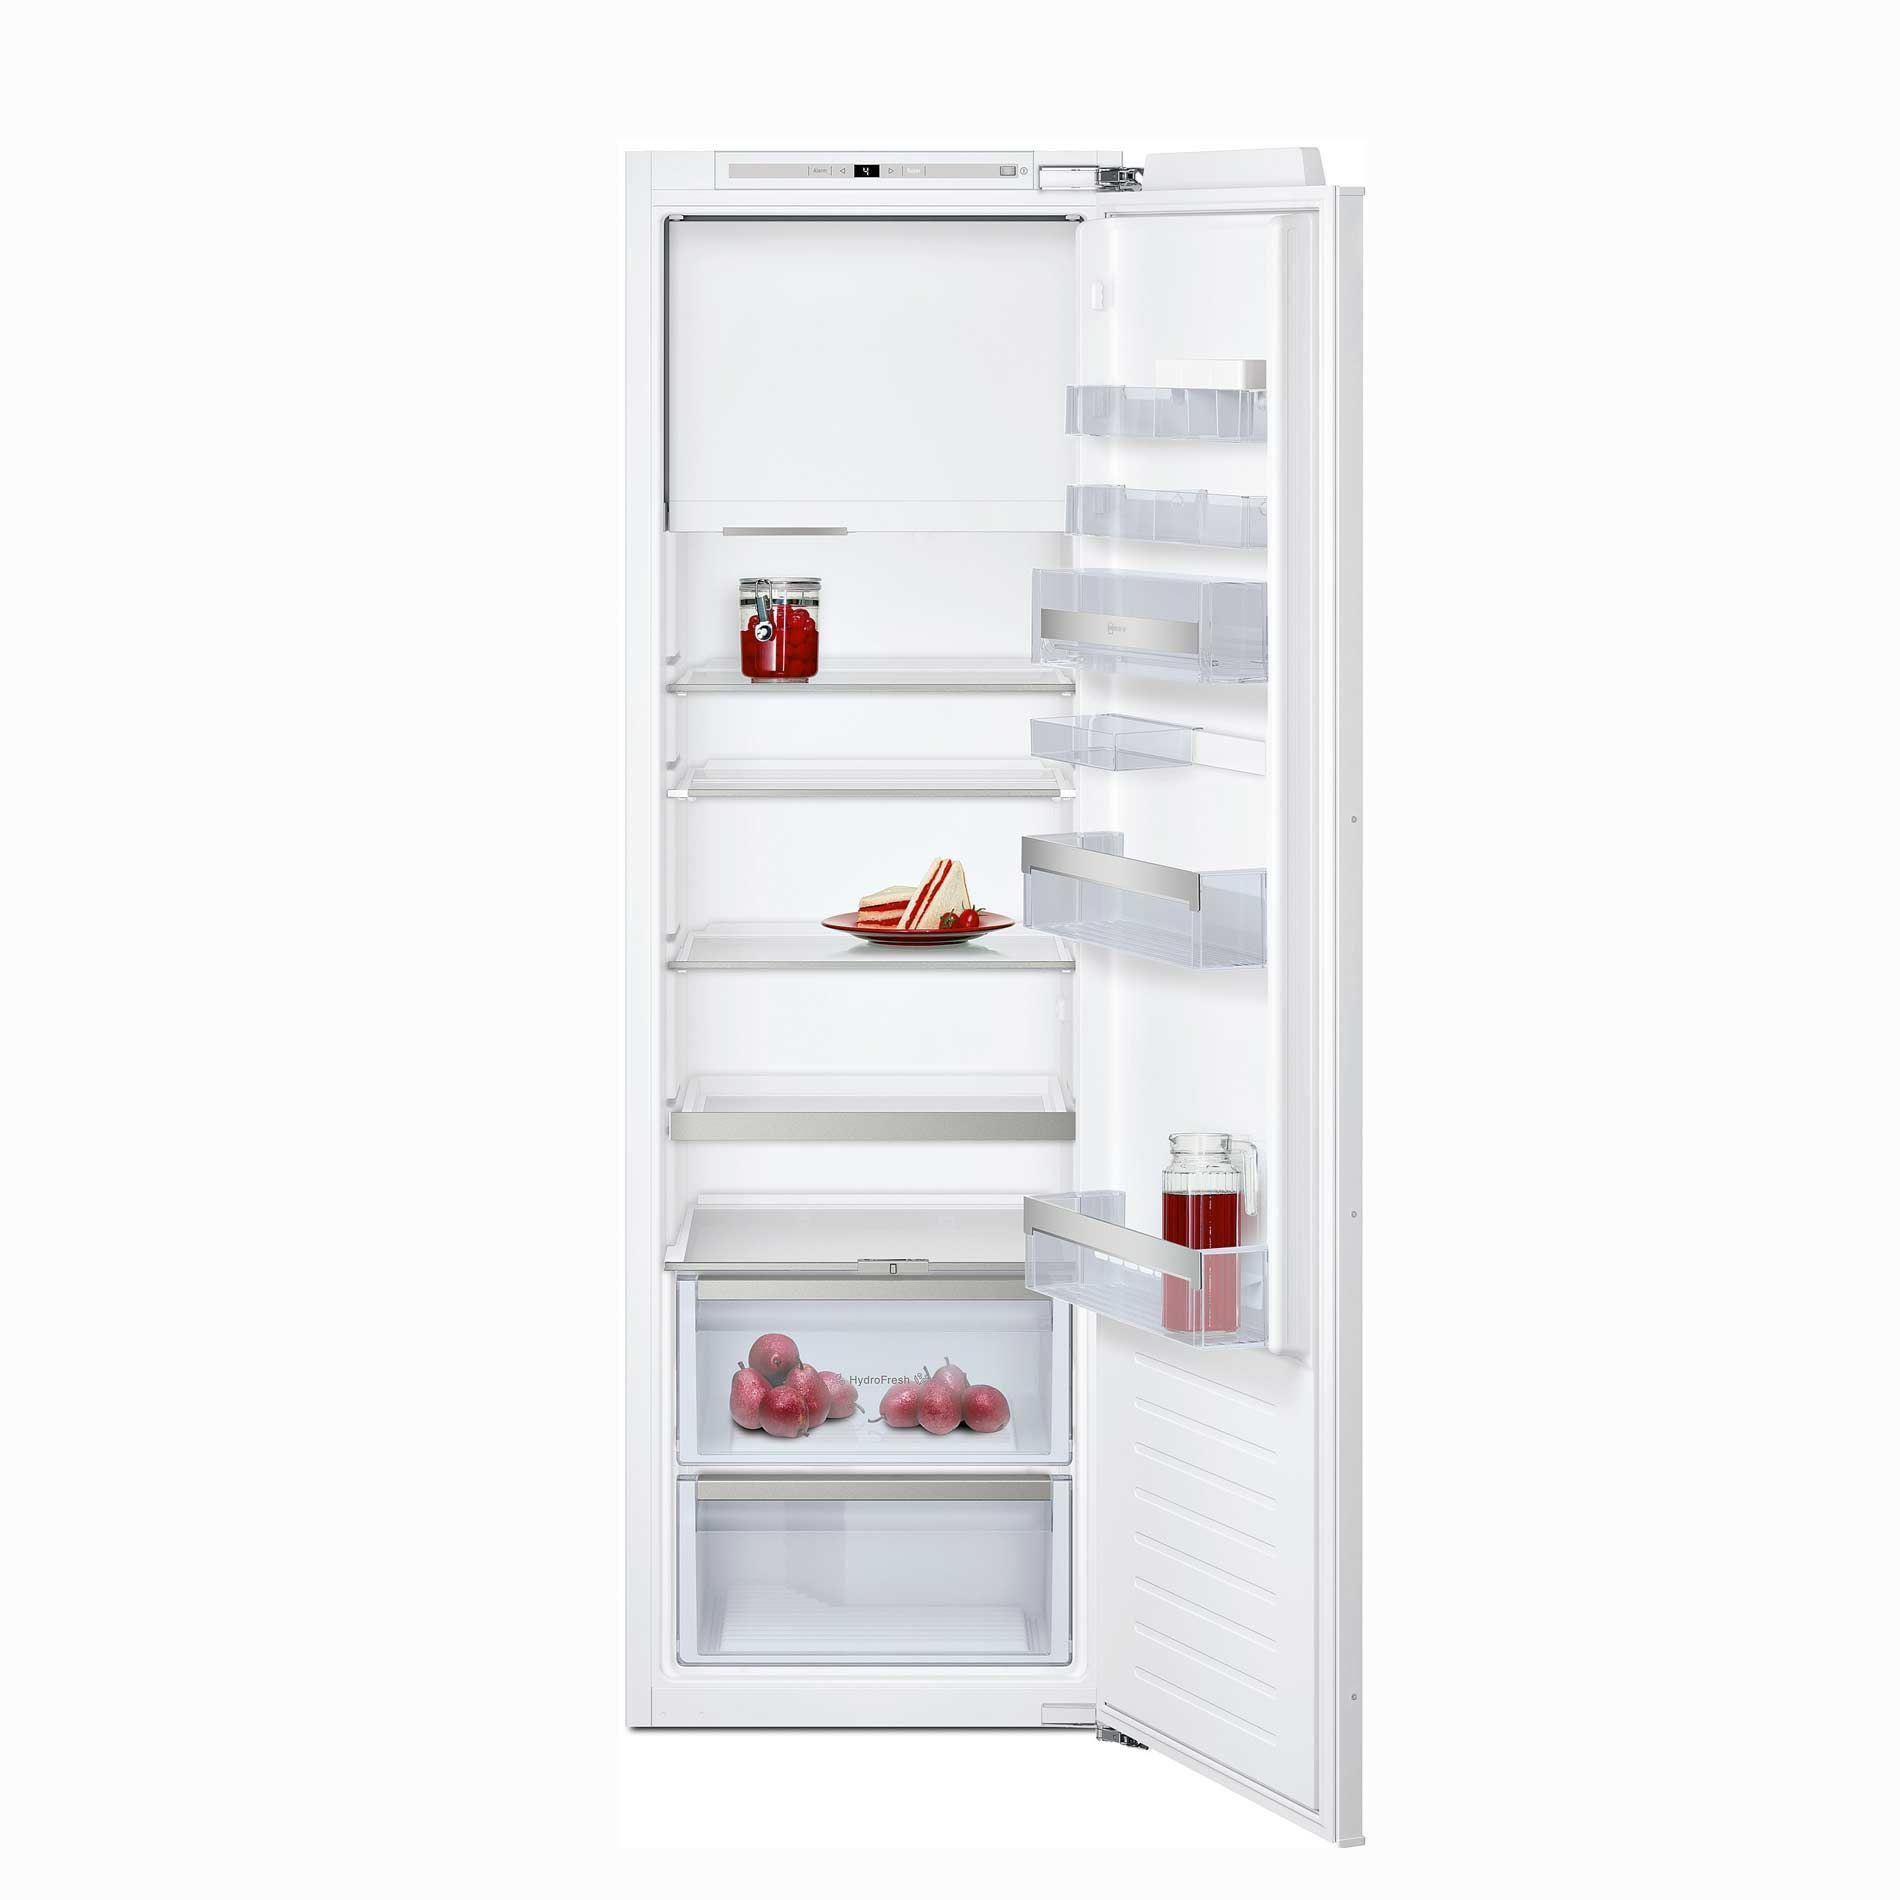 Picture of KI2823F30G Built In Fridge